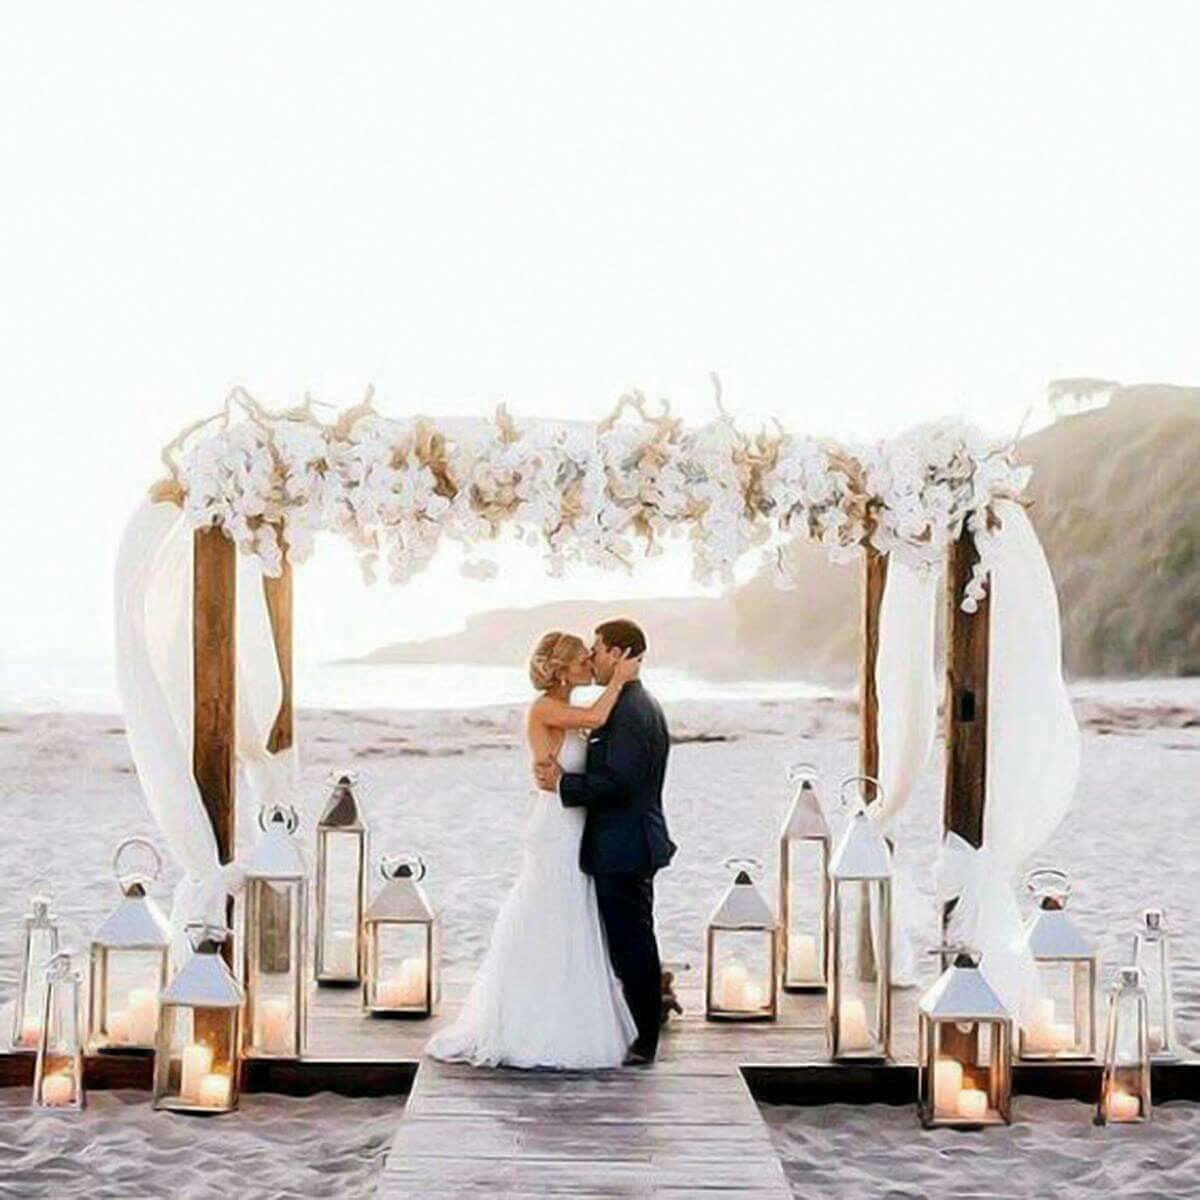 beach-wedding-arch-decorations-best-of-19-charming-beach-and-coastal-wedding-arch-ideas-for-2018-of-beach-wedding-arch-decorations. Amor al atardecer